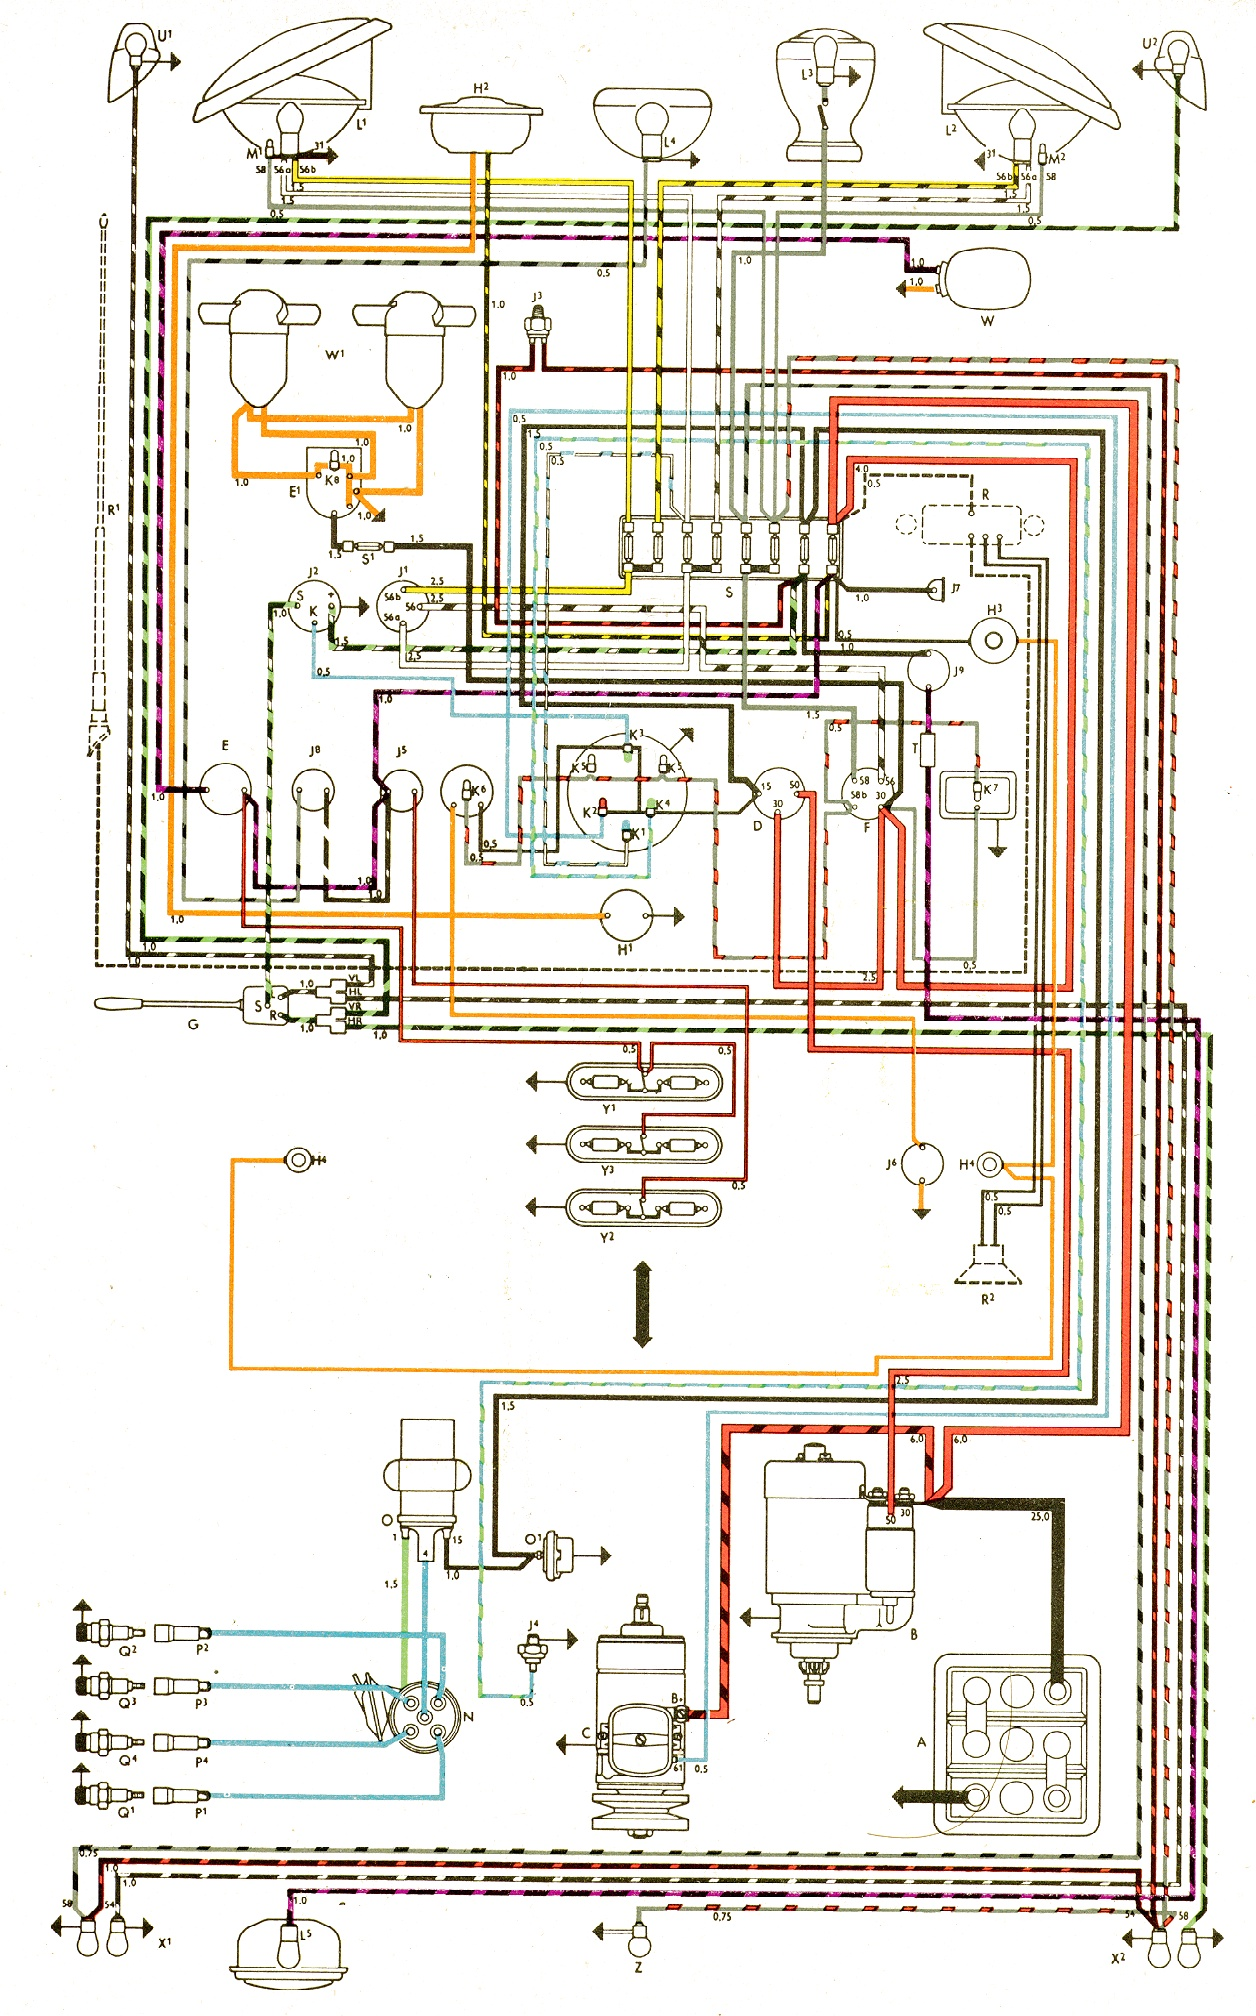 1967 vw bug wiring diagram 1967 image wiring diagram 1967 vw bus wiring harness jodebal com on 1967 vw bug wiring diagram